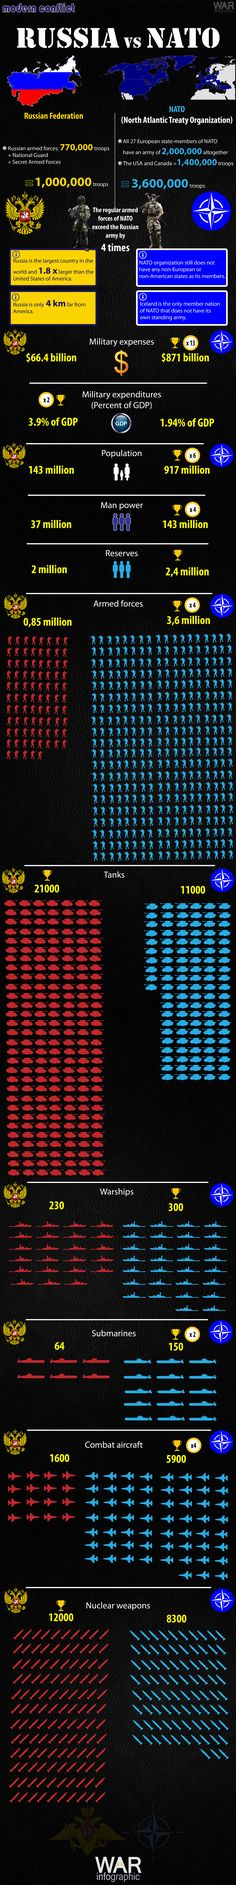 Military comparison between Russian Federation and NATO